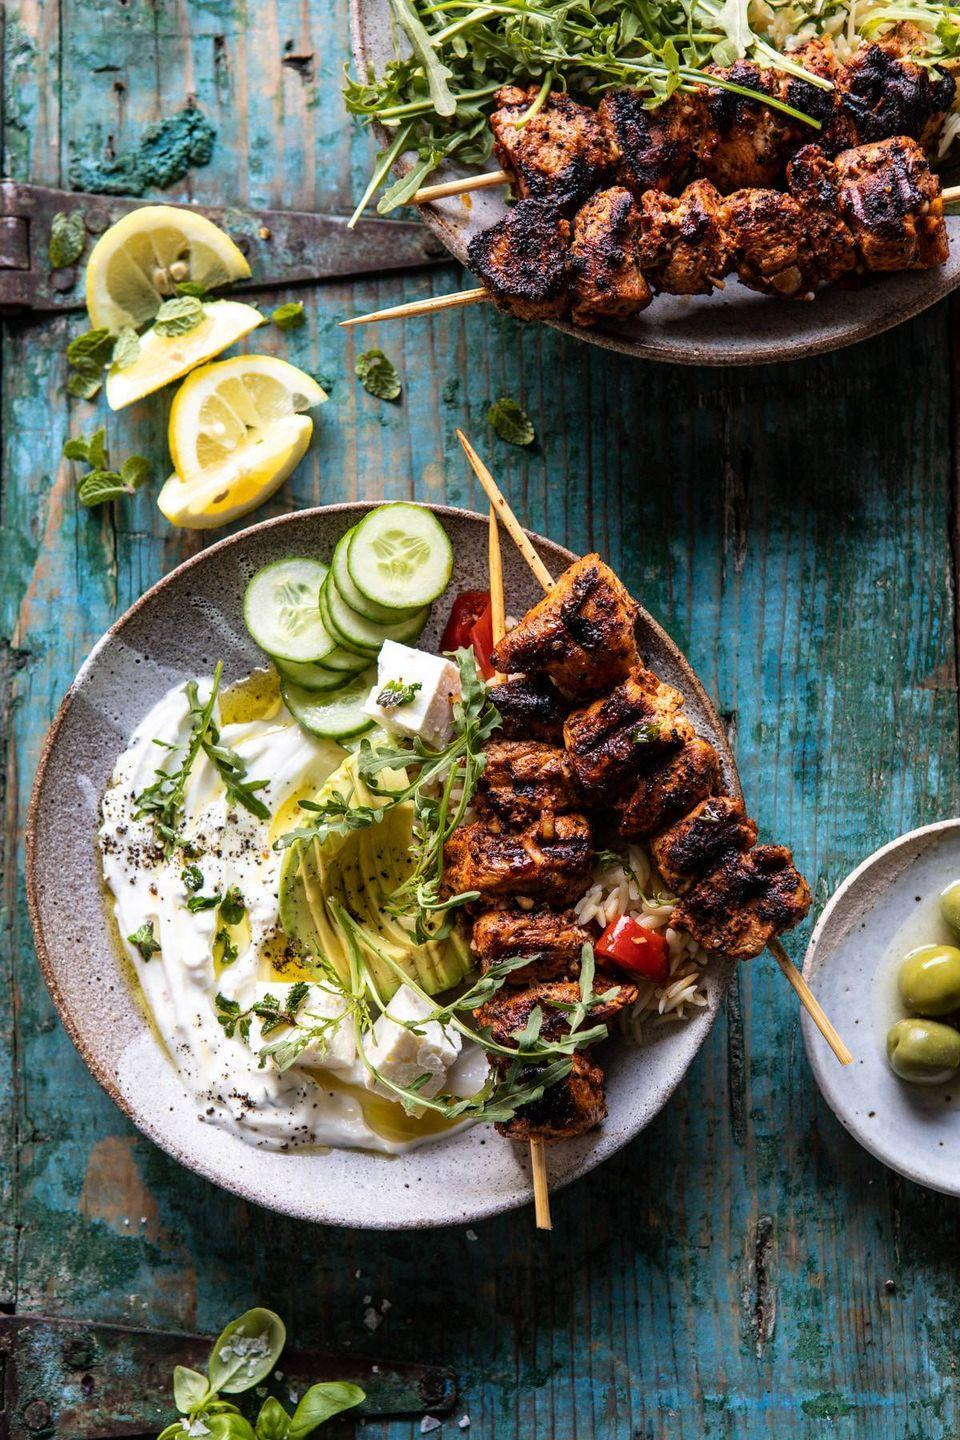 """<p>Orzo, roasted peppers, avocado, feta cheese, cucumbers, and an addicting dressing are just a few of the reasons these bowls are at the top of our list.</p><p><strong>Get the recipe at <a href=""""https://www.halfbakedharvest.com/greek-lemon-chicken-bowls/"""" rel=""""nofollow noopener"""" target=""""_blank"""" data-ylk=""""slk:Half Baked Harvest"""" class=""""link rapid-noclick-resp"""">Half Baked Harvest</a>.</strong> </p><p><a class=""""link rapid-noclick-resp"""" href=""""https://go.redirectingat.com?id=74968X1596630&url=https%3A%2F%2Fwww.walmart.com%2Fip%2FThe-Pioneer-Woman-Frontier-Collection-13-Teal-Slotted-Spatula%2F547532946&sref=https%3A%2F%2Fwww.thepioneerwoman.com%2Ffood-cooking%2Fmeals-menus%2Fg32188535%2Fbest-grilling-recipes%2F"""" rel=""""nofollow noopener"""" target=""""_blank"""" data-ylk=""""slk:SHOP SPATULAS"""">SHOP SPATULAS</a></p>"""